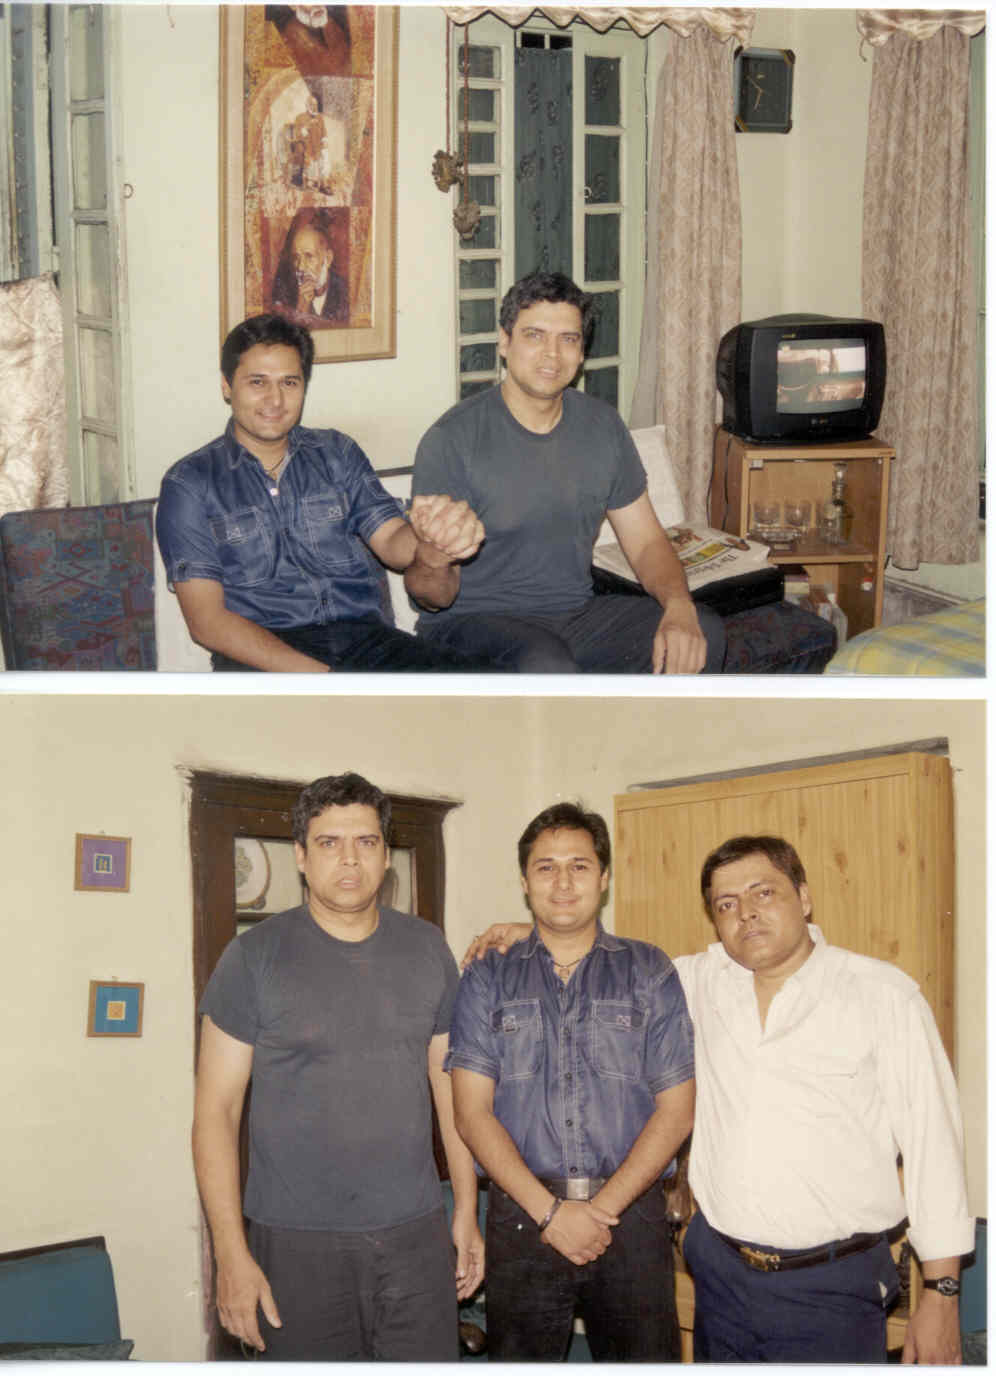 Myself, with one of my first cousins Rajat (a Flight Attendant with Indian Airlines, training to be a Commercial Pilot); and my brother Guddu